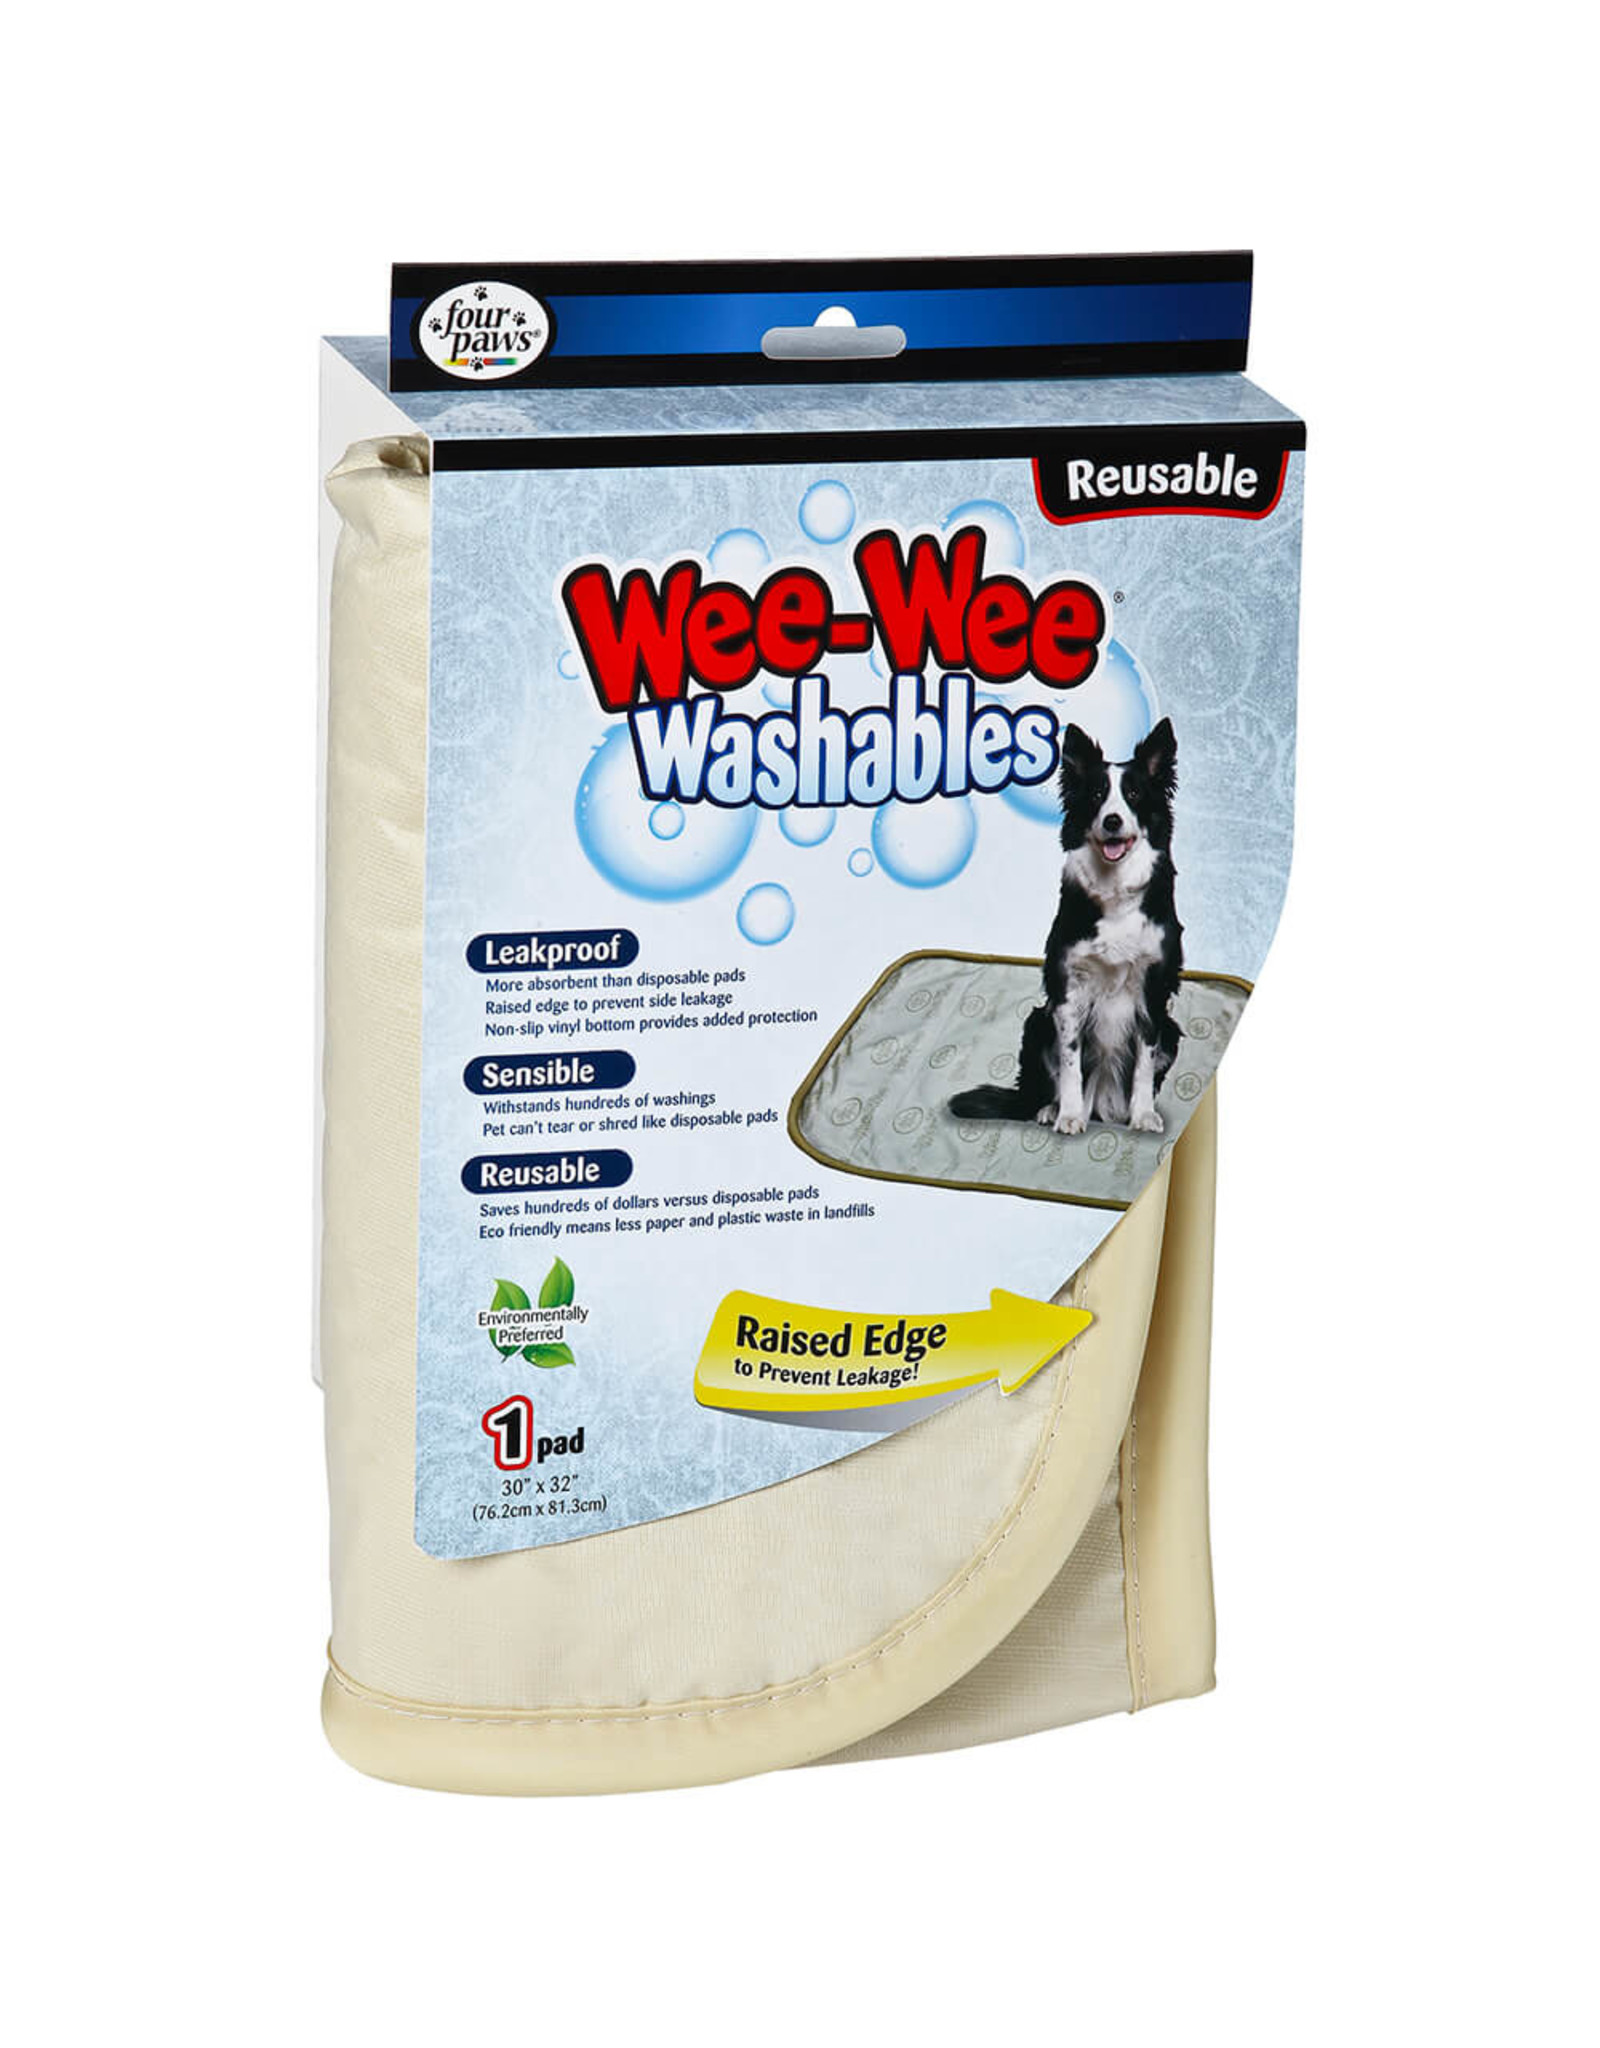 Four Paws Four Paws Wee-Wee Washable Pads LG 30x32